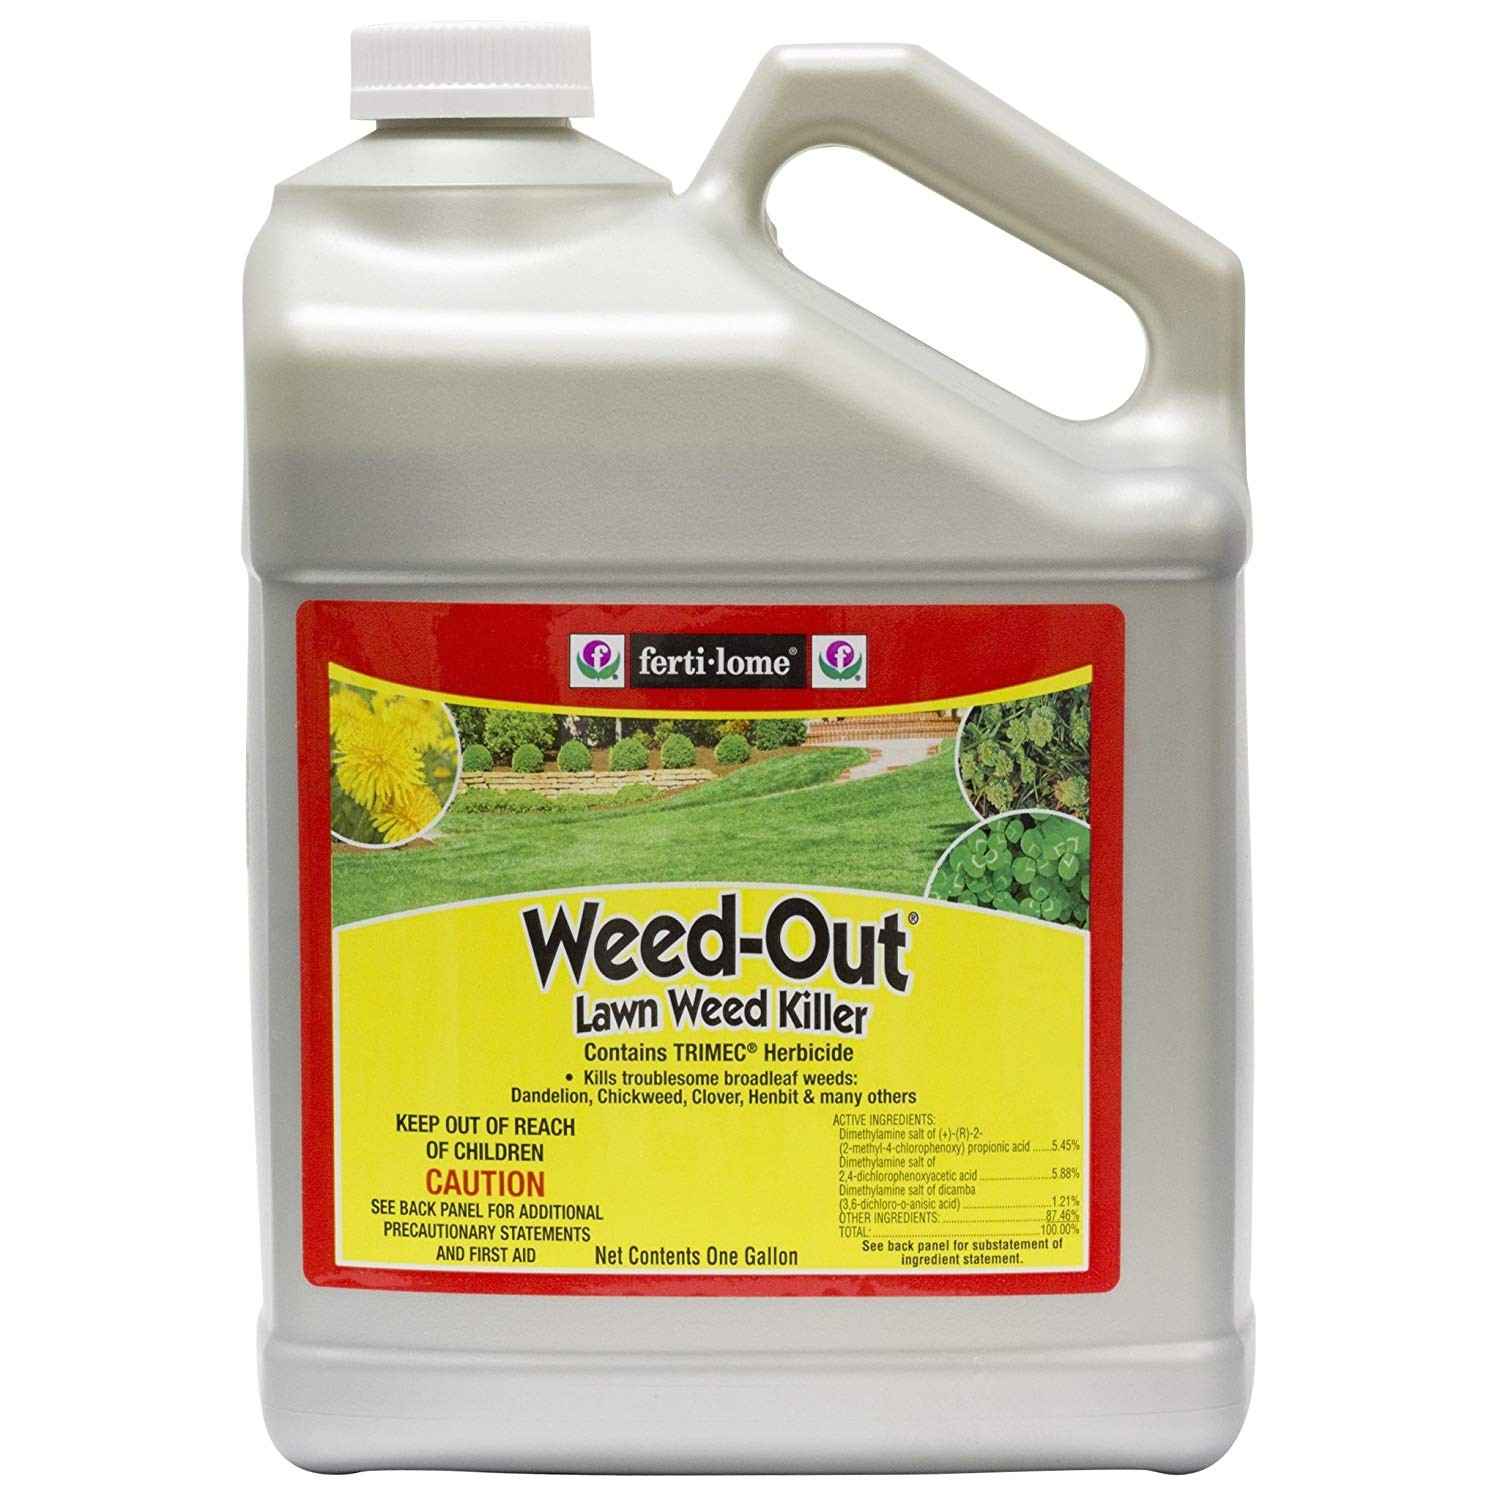 amazon com vpg fertilome 405 he 1gal weed out weed killers garden outdoor